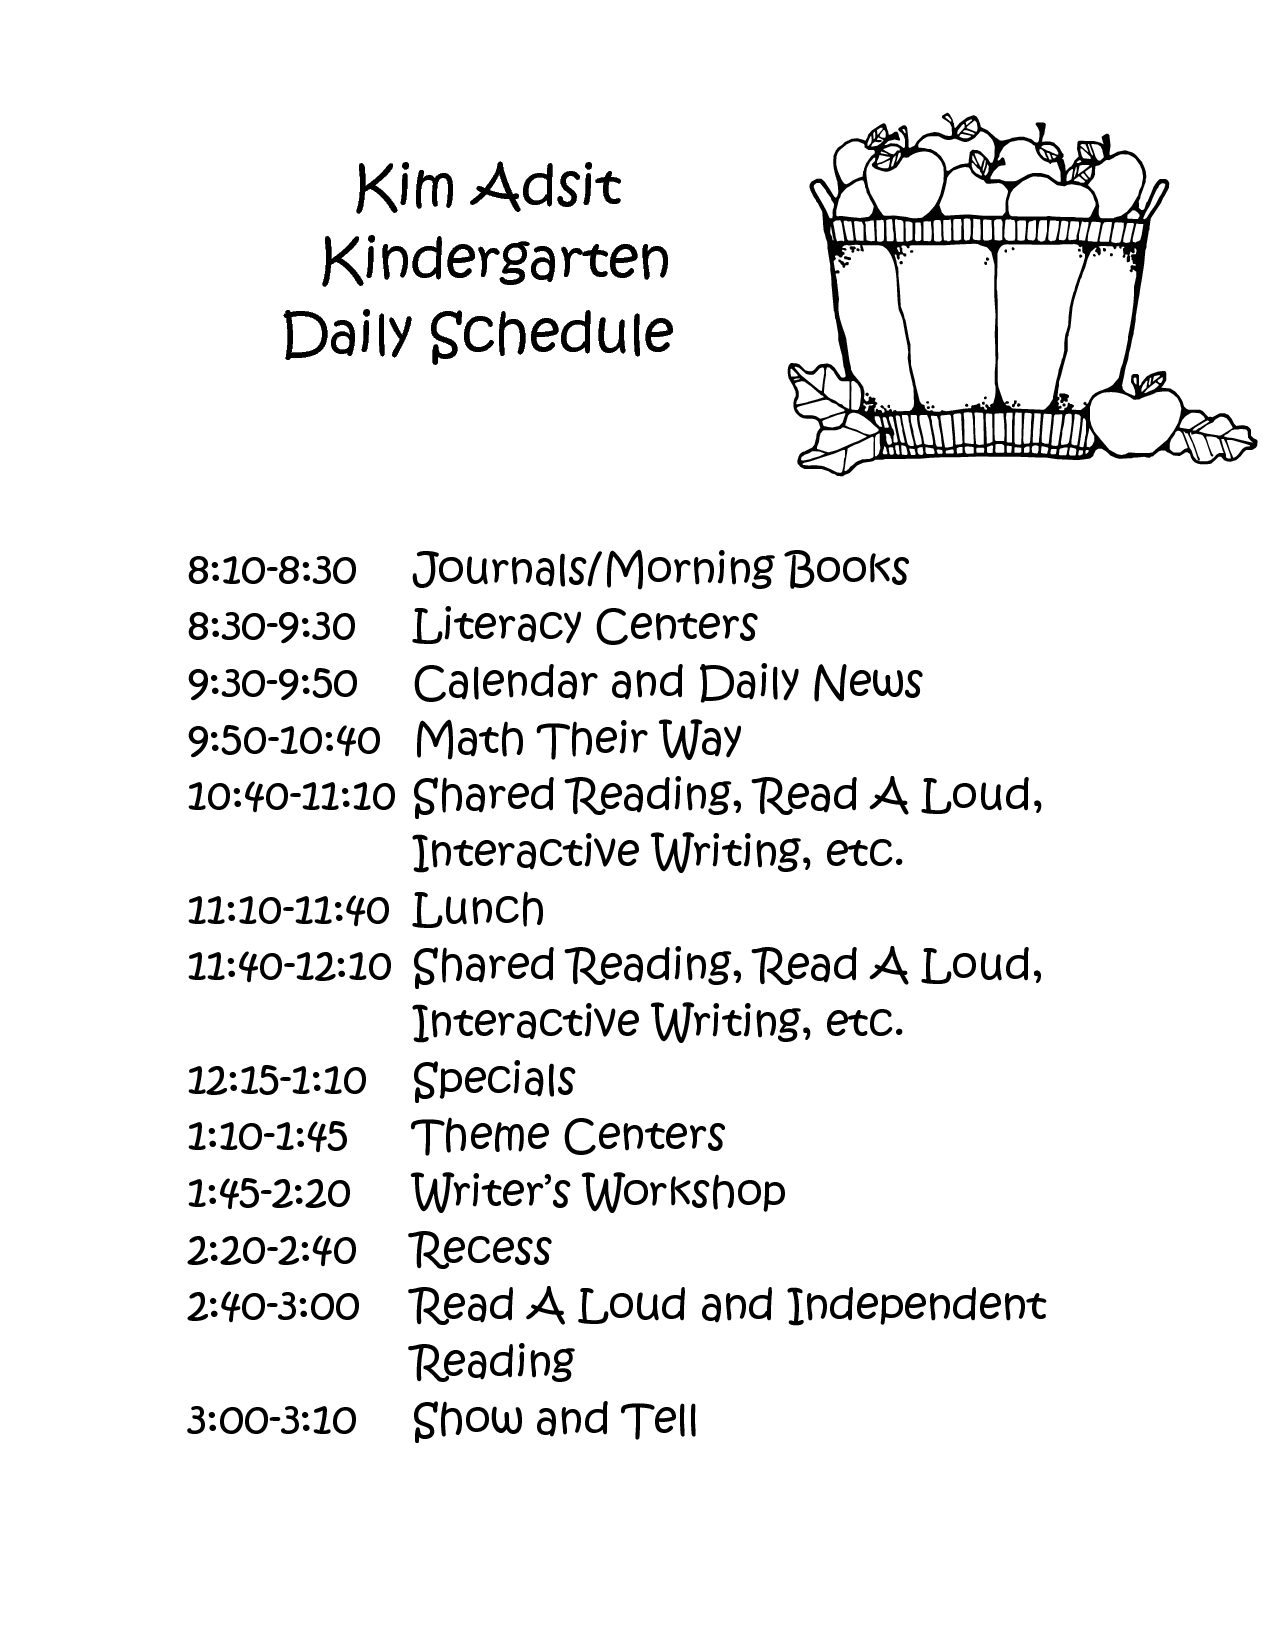 Full Day Kindergarten Class Schedule